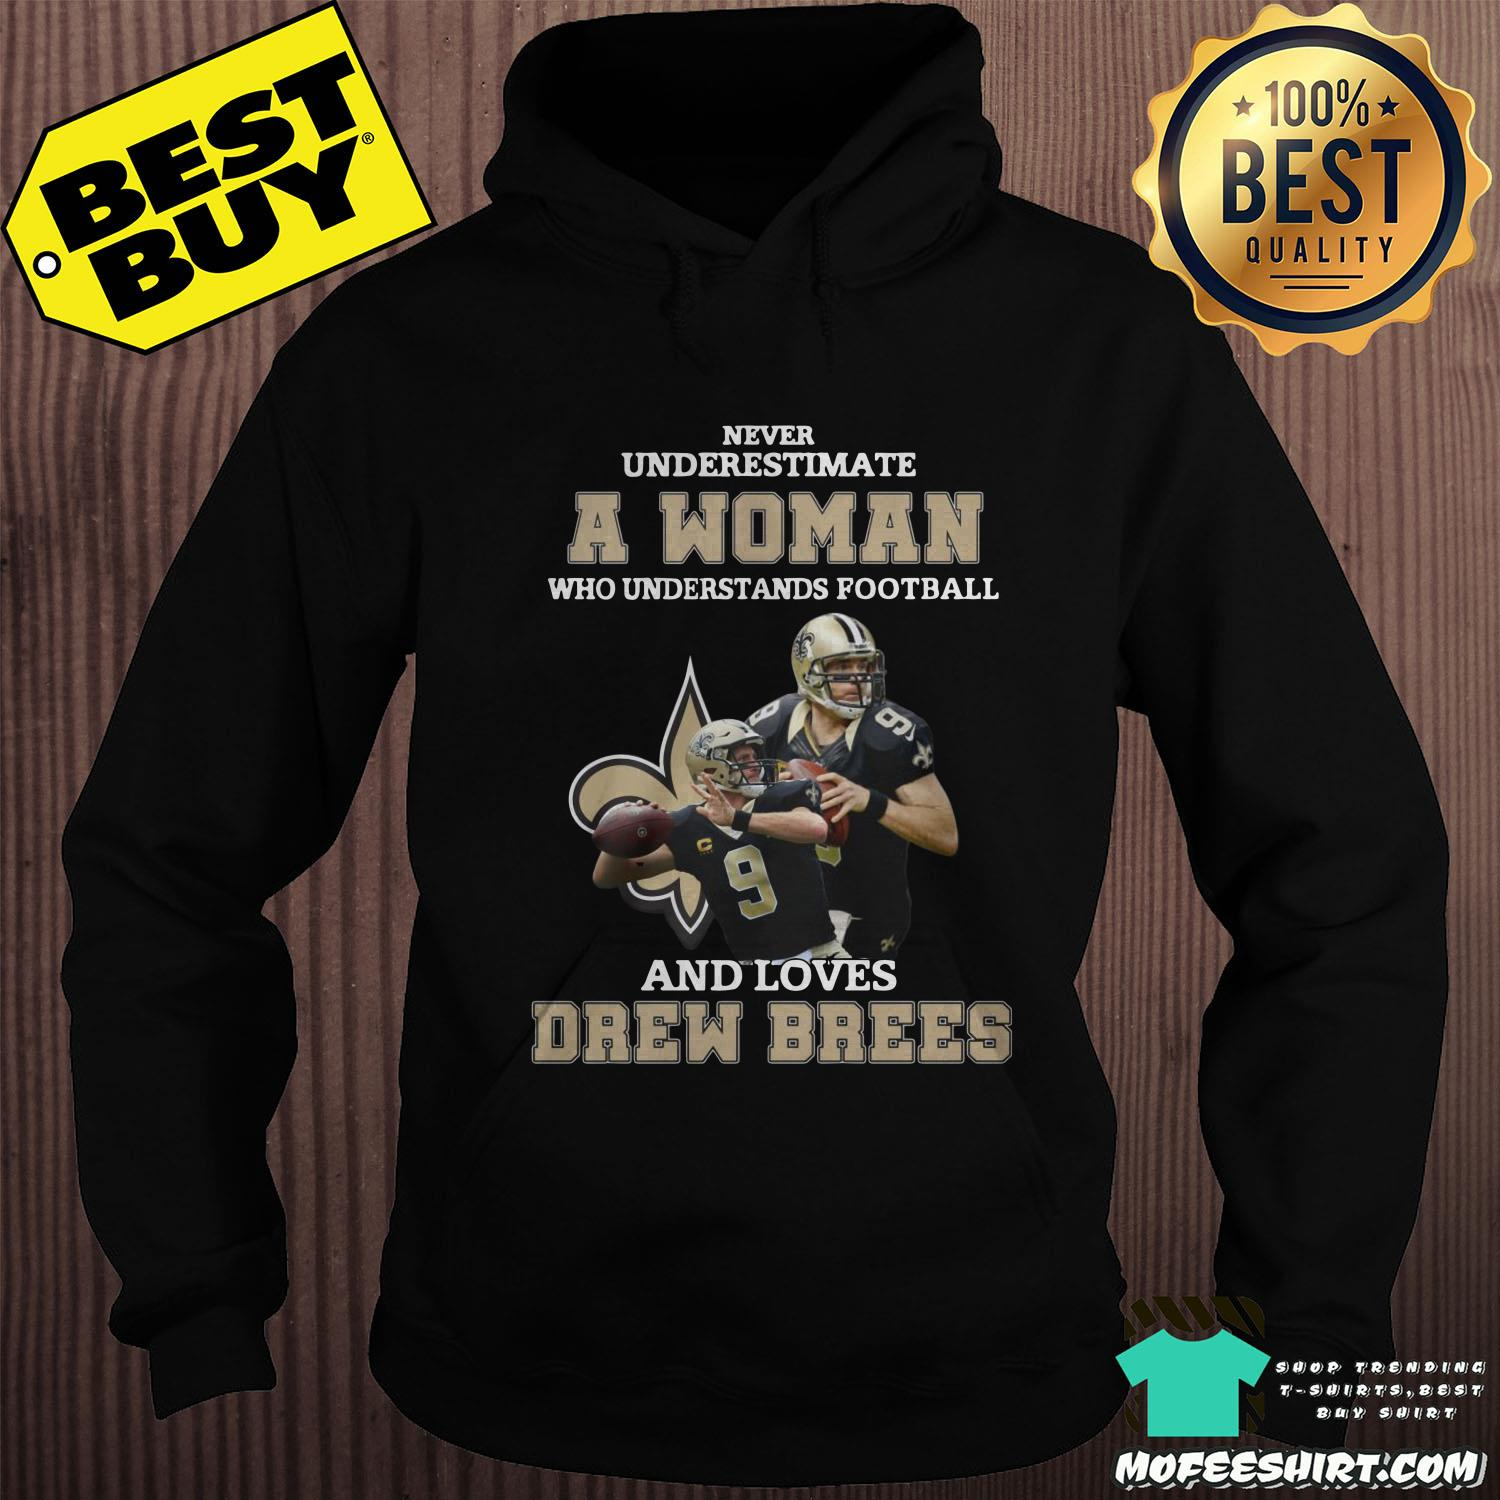 never underestimate a woman who understands football and loves drew brees hoodie - Never underestimate A Woman Who Understands Football And Loves Drew Brees Shirt